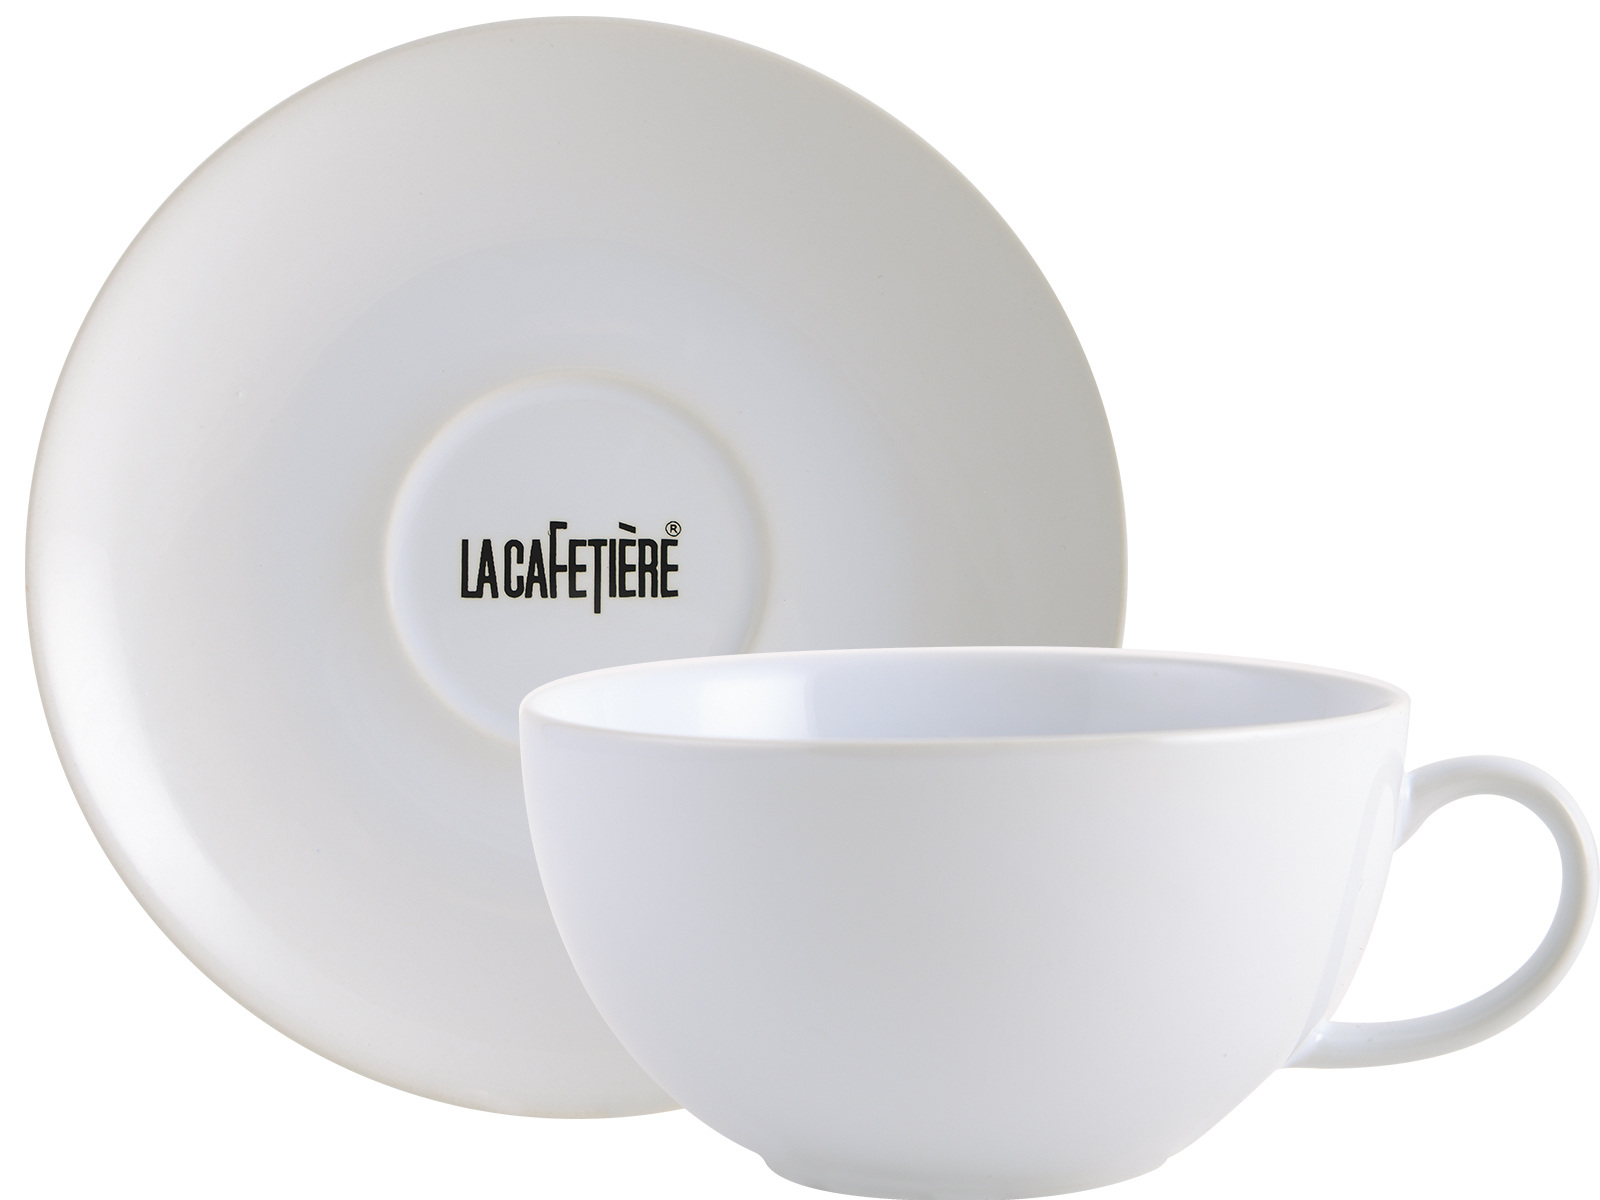 La Cafetiere Decal Range Cappuccino Cup Saucer5